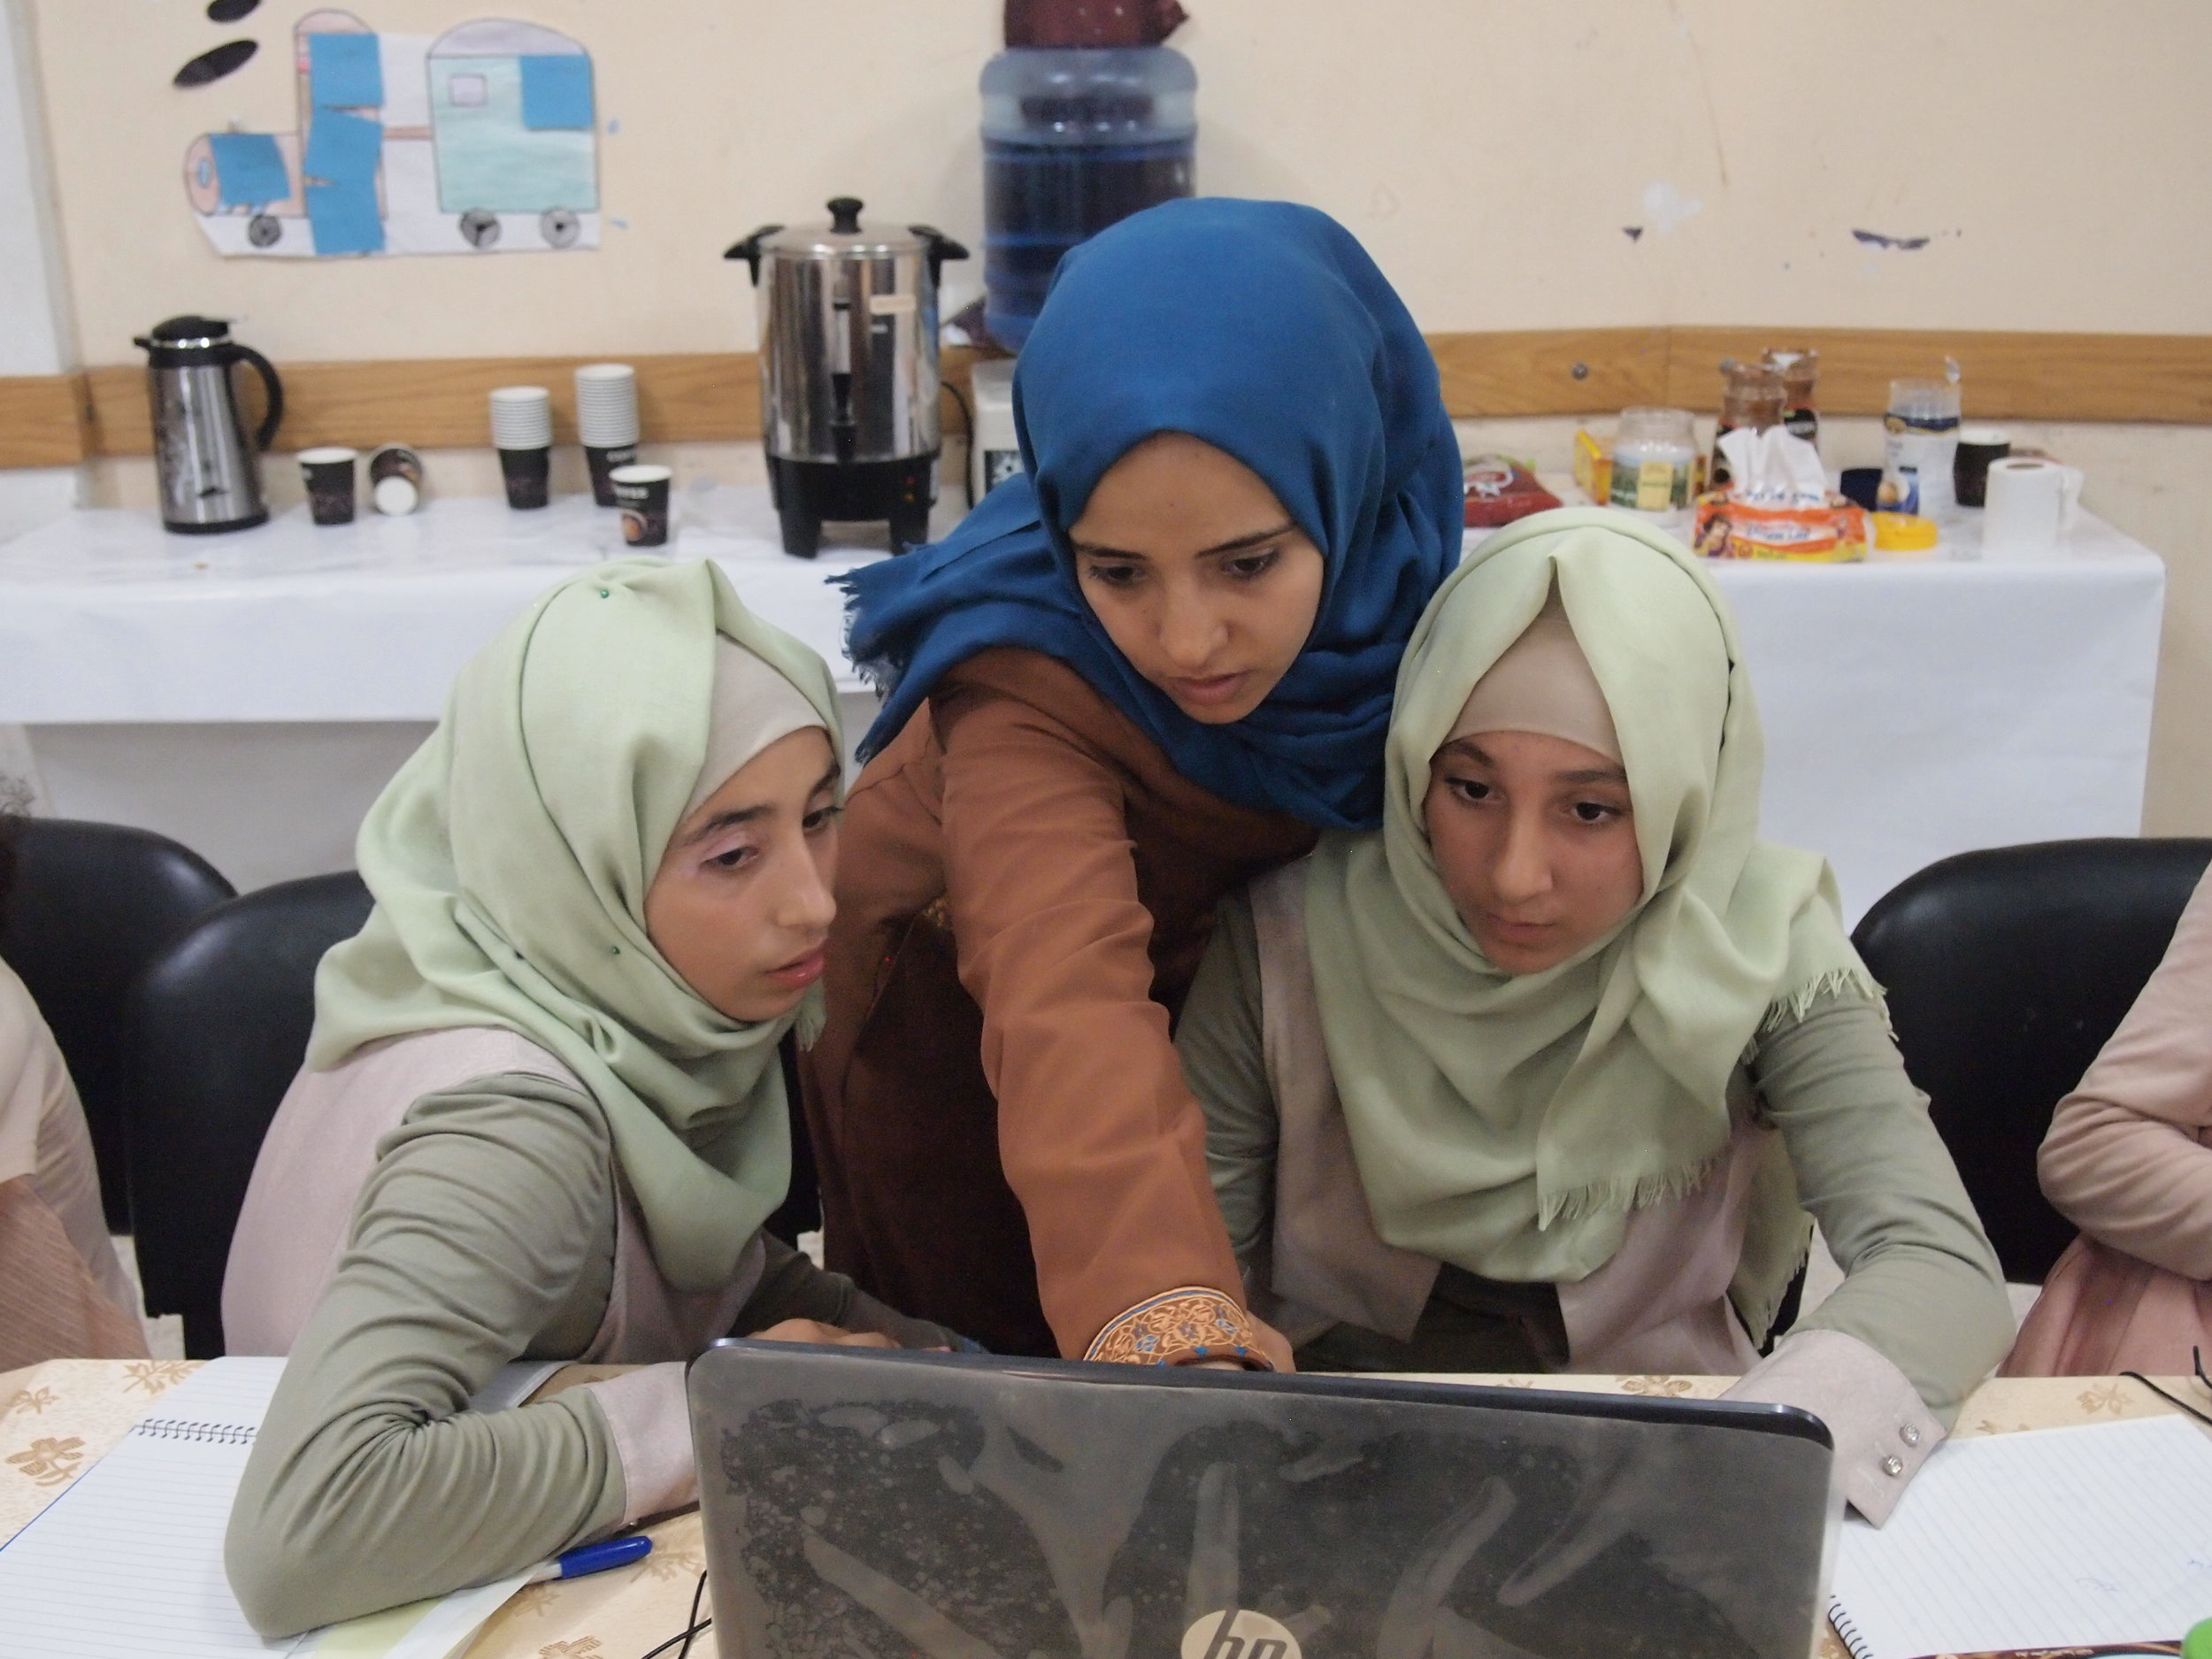 Local women collaborated on details to ensure safe, inclusive spaces. Credit: UN-Habitat